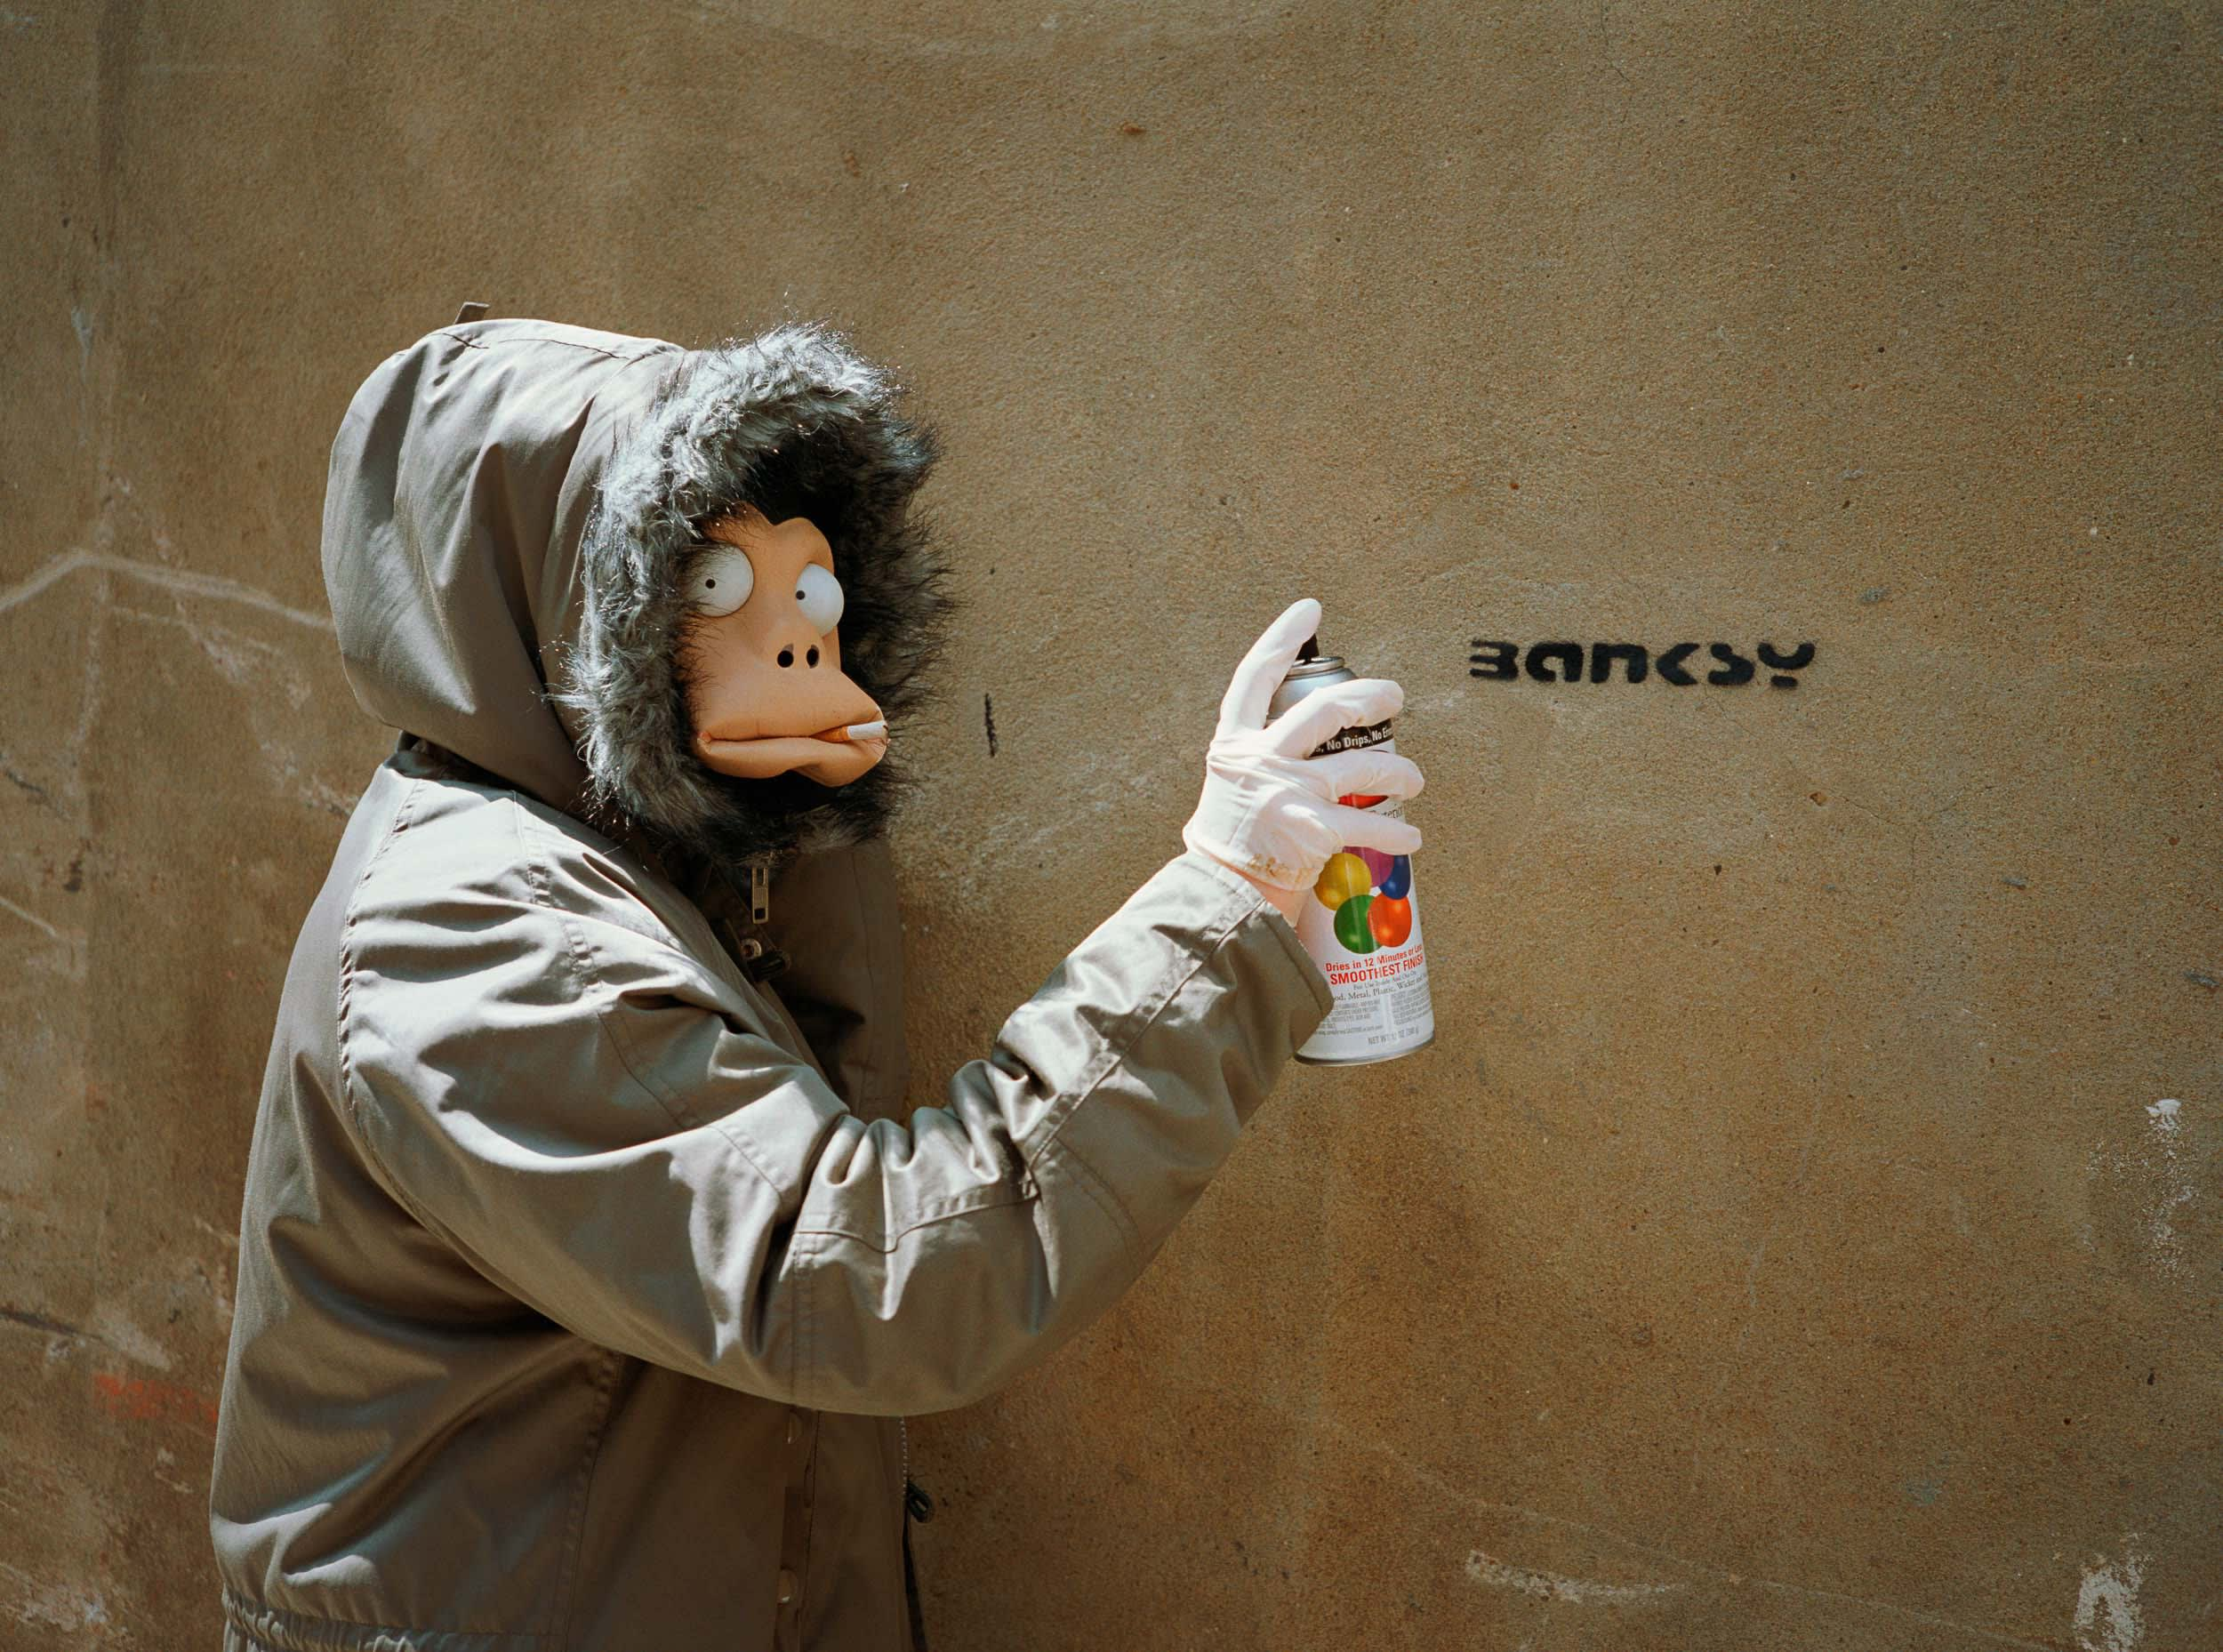 Banksy Monkey Mask Session James Pfaff